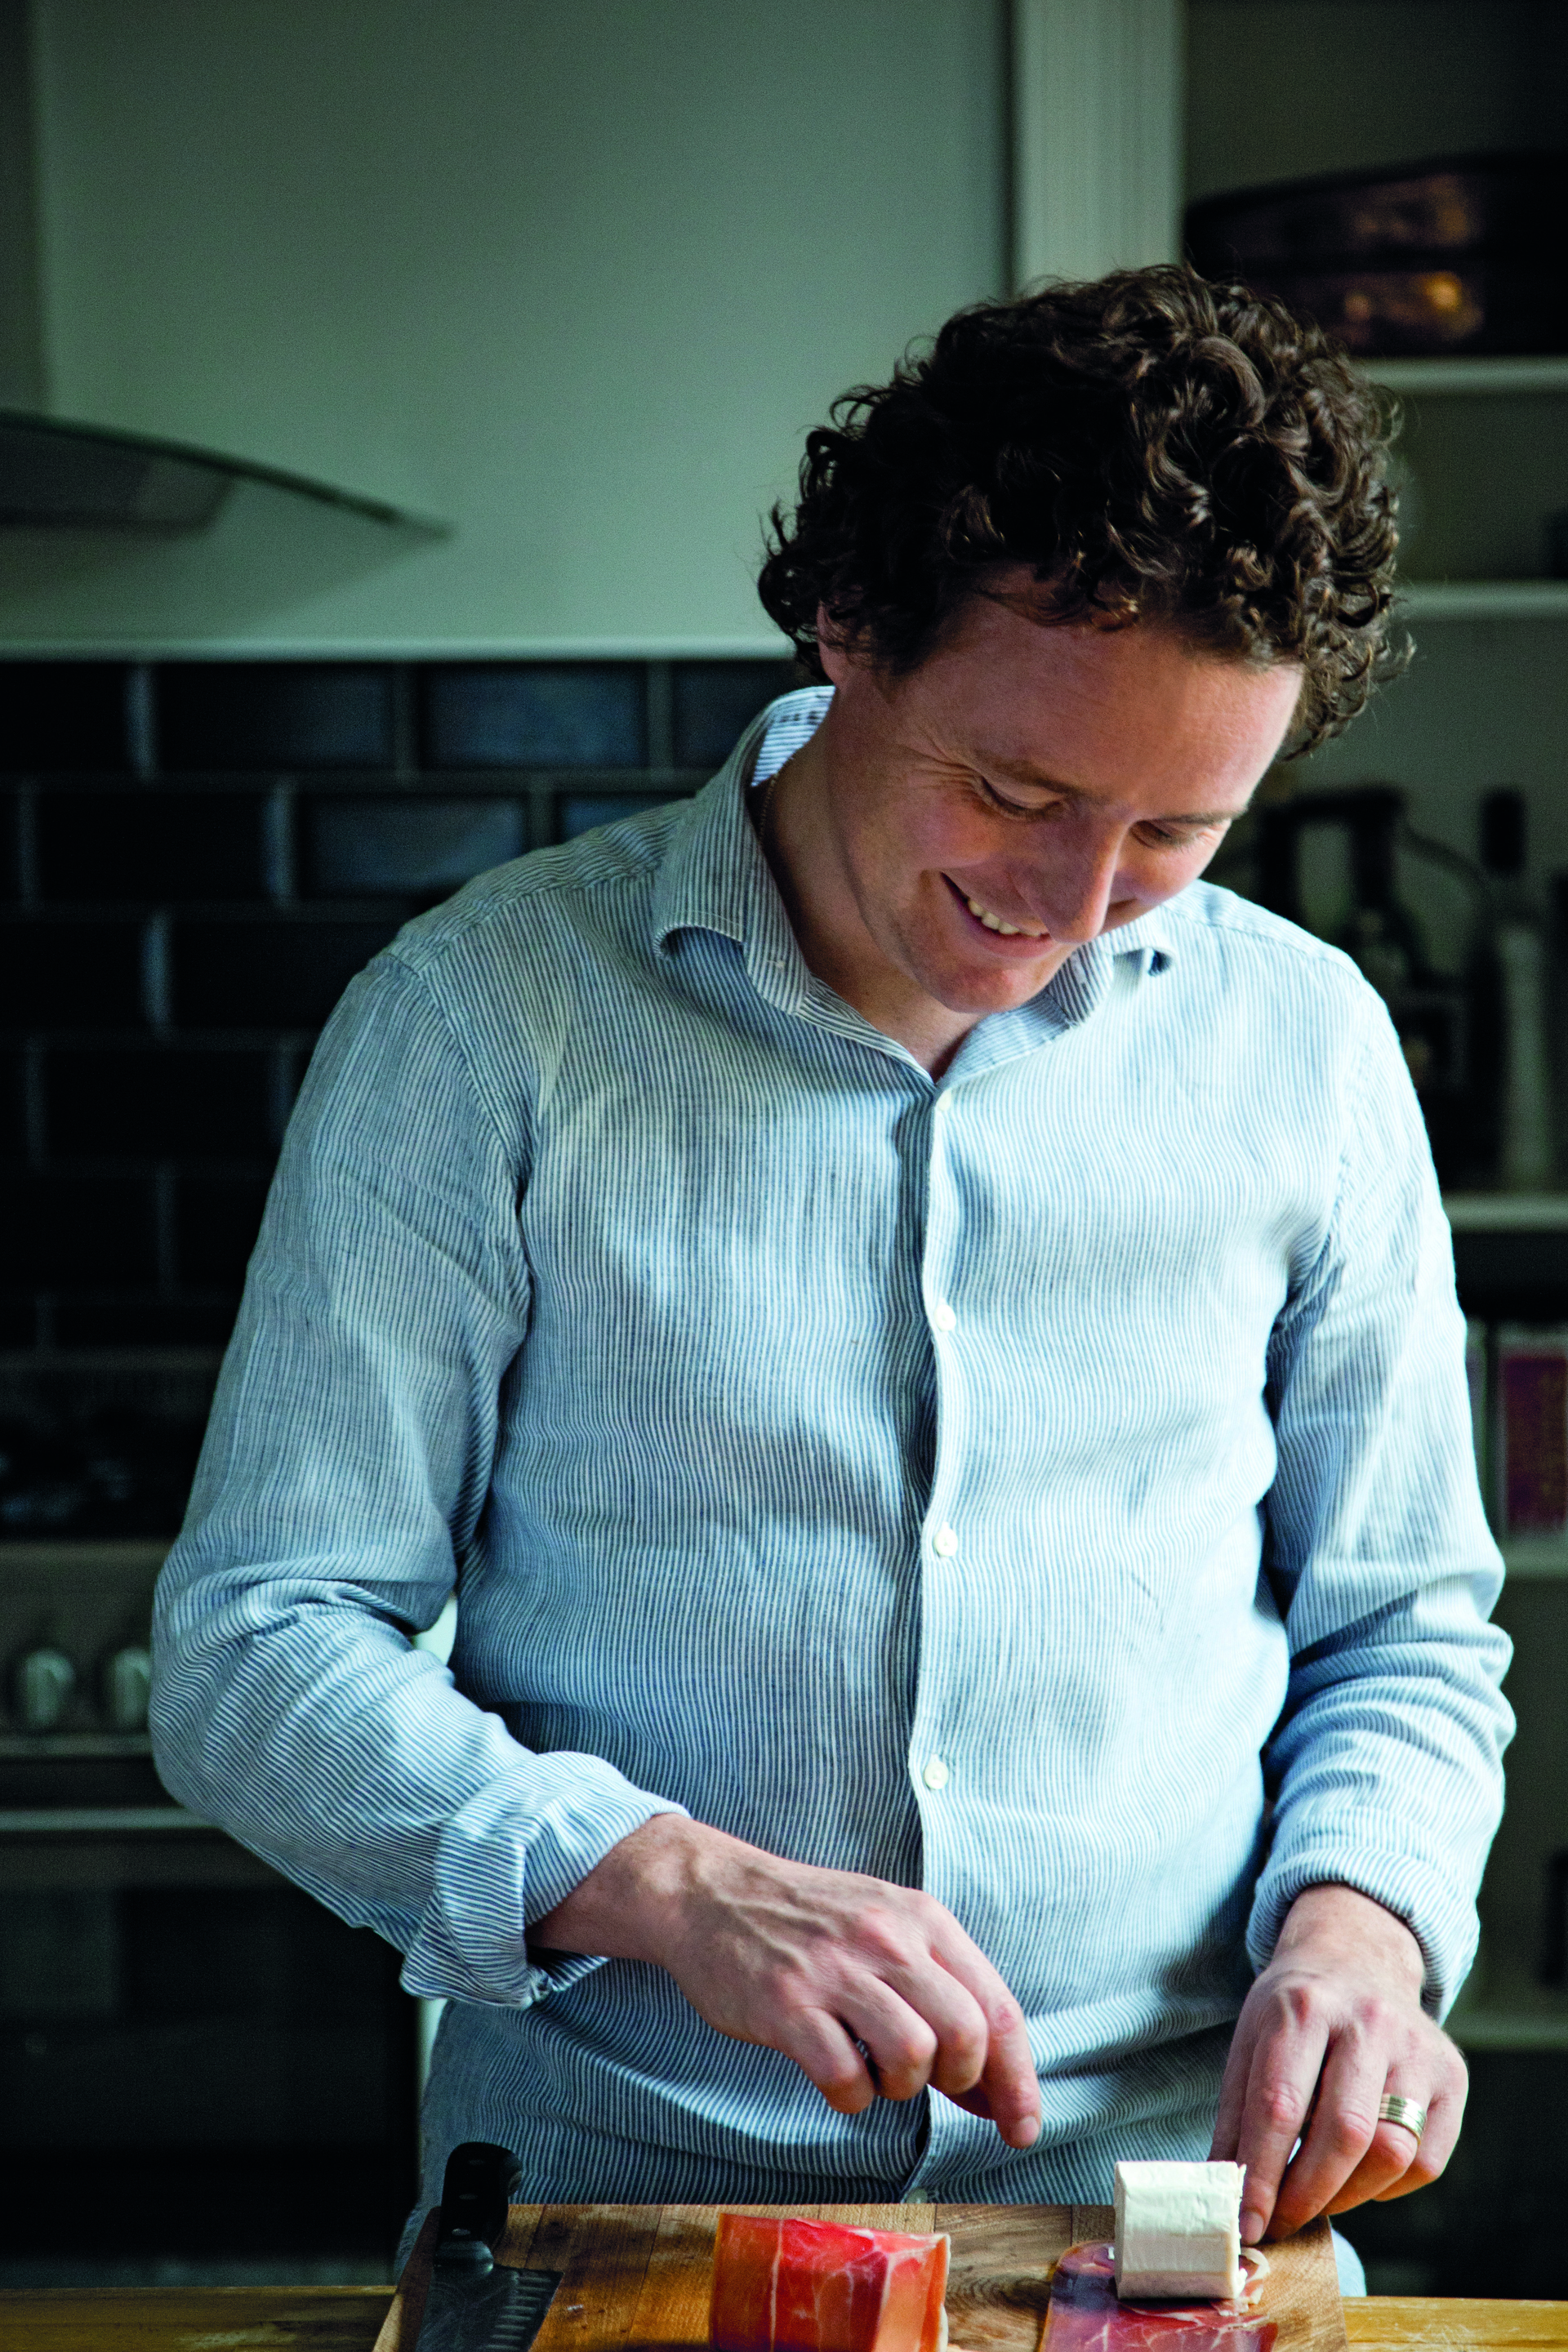 Tom Kitchin's Feast for Burns Night